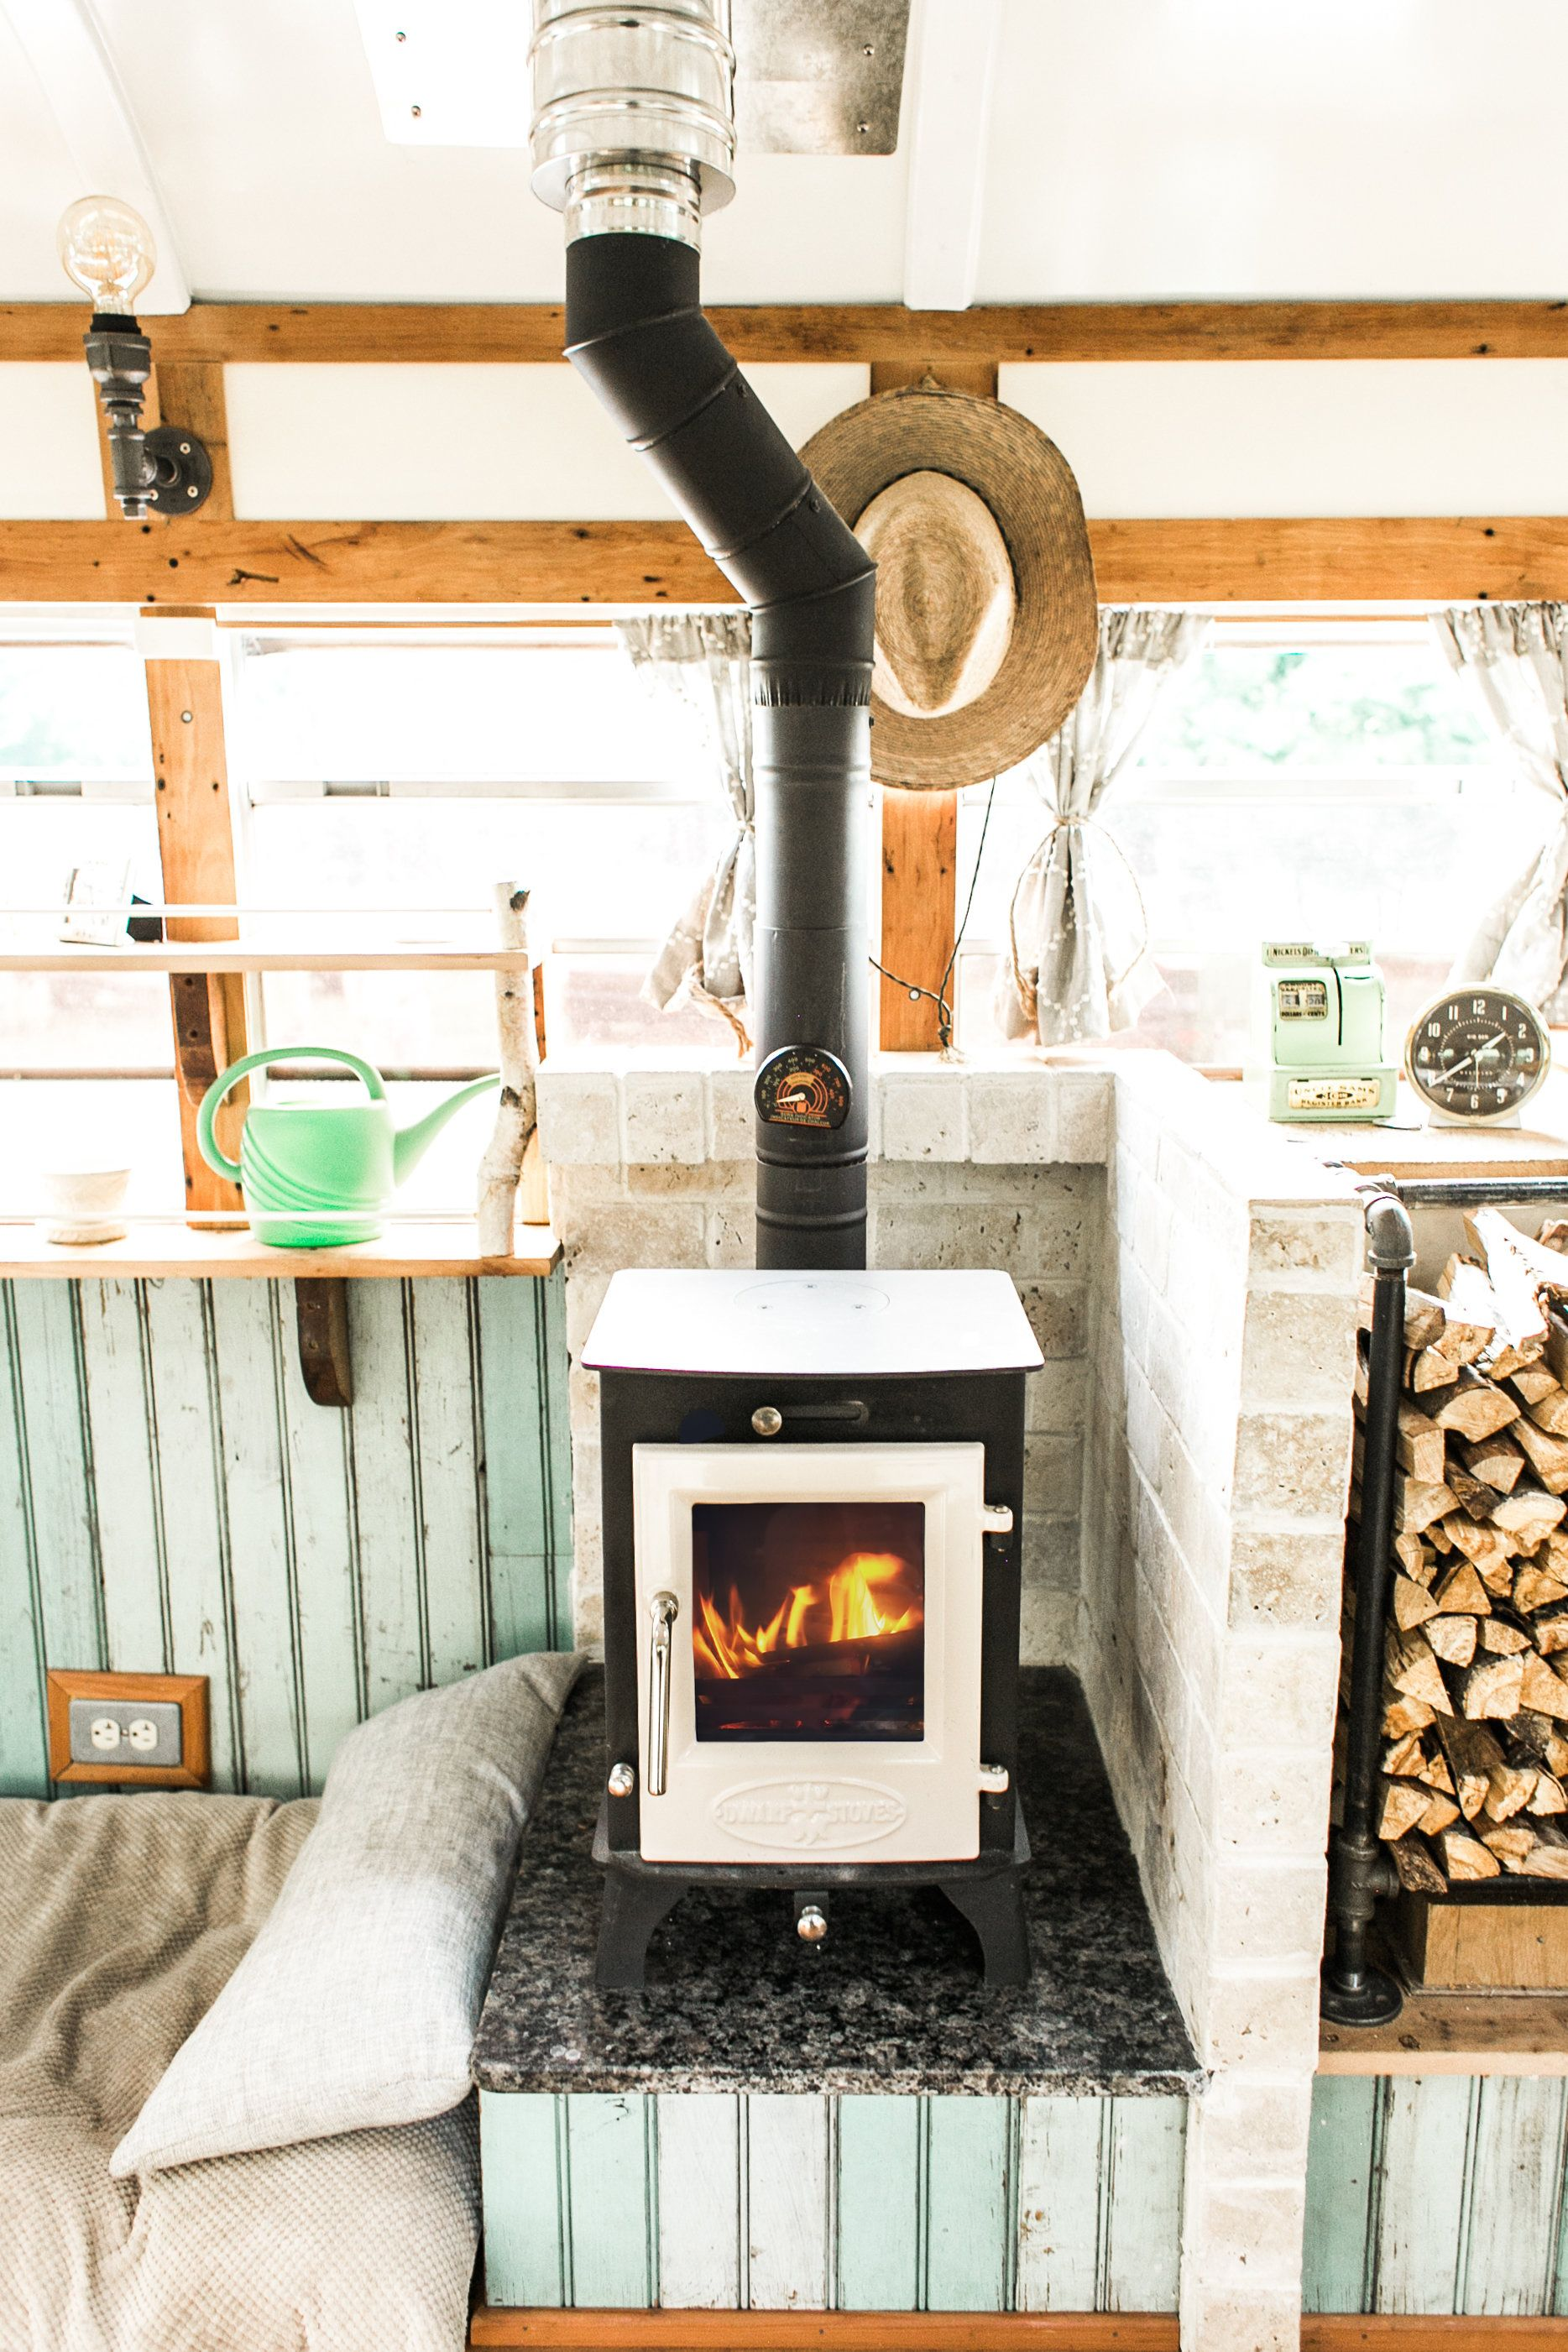 Wood Stove for Tiny Home, RV, Cabin, Bus #tinyhome